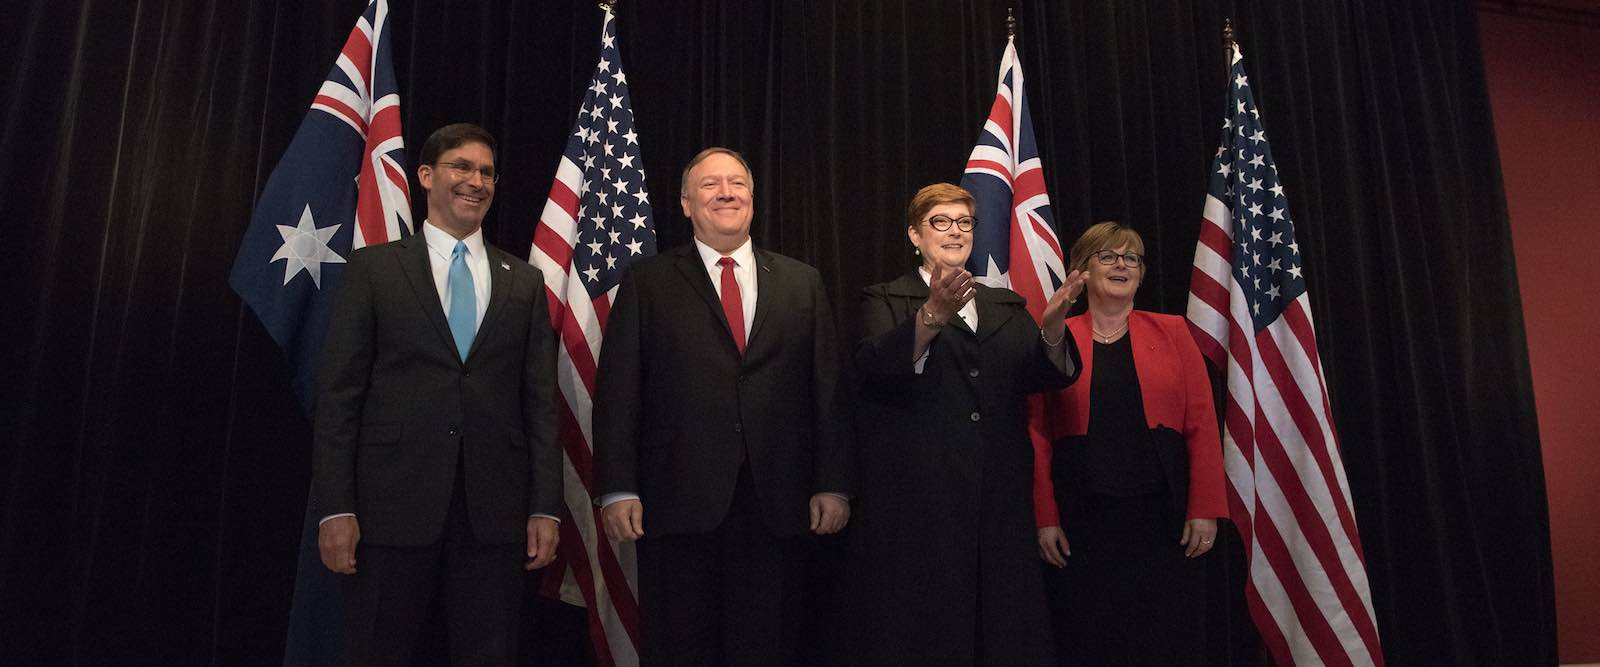 Sunday's AUSMIN talks brought an invitation for Australia to join a US coalition maritime protection force. (Photo: US Secretary of Defense/Flickr)